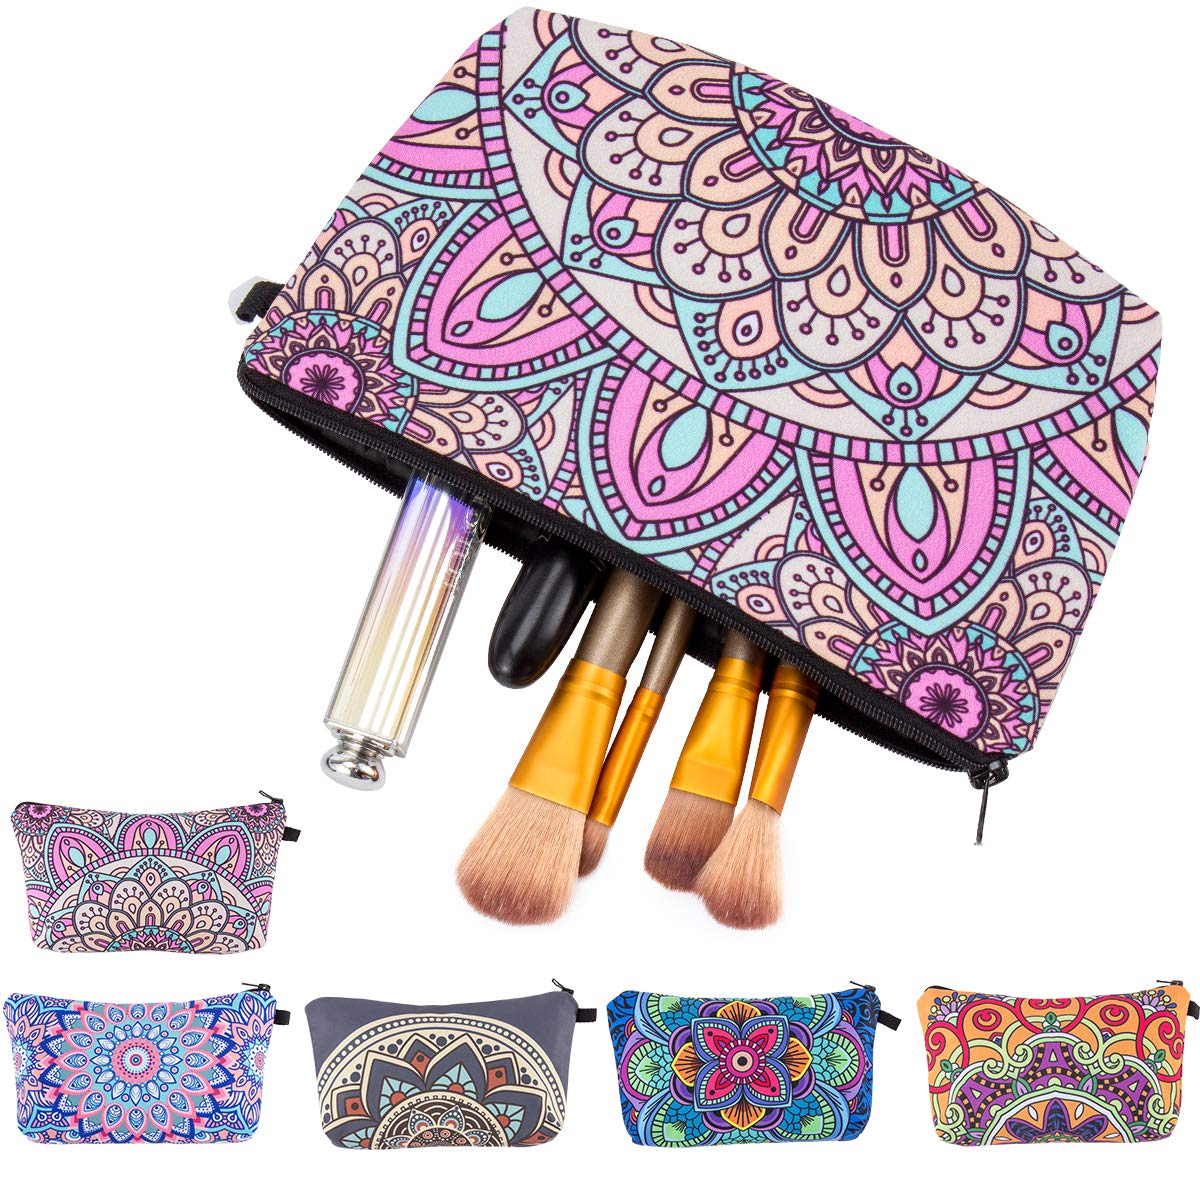 Biubee 5 Packs Makeup Cosmetic Bag- Waterproof Toiletry Pouch Bags with Mandala Flowers for Women Girls Travel Use (5 Styles)